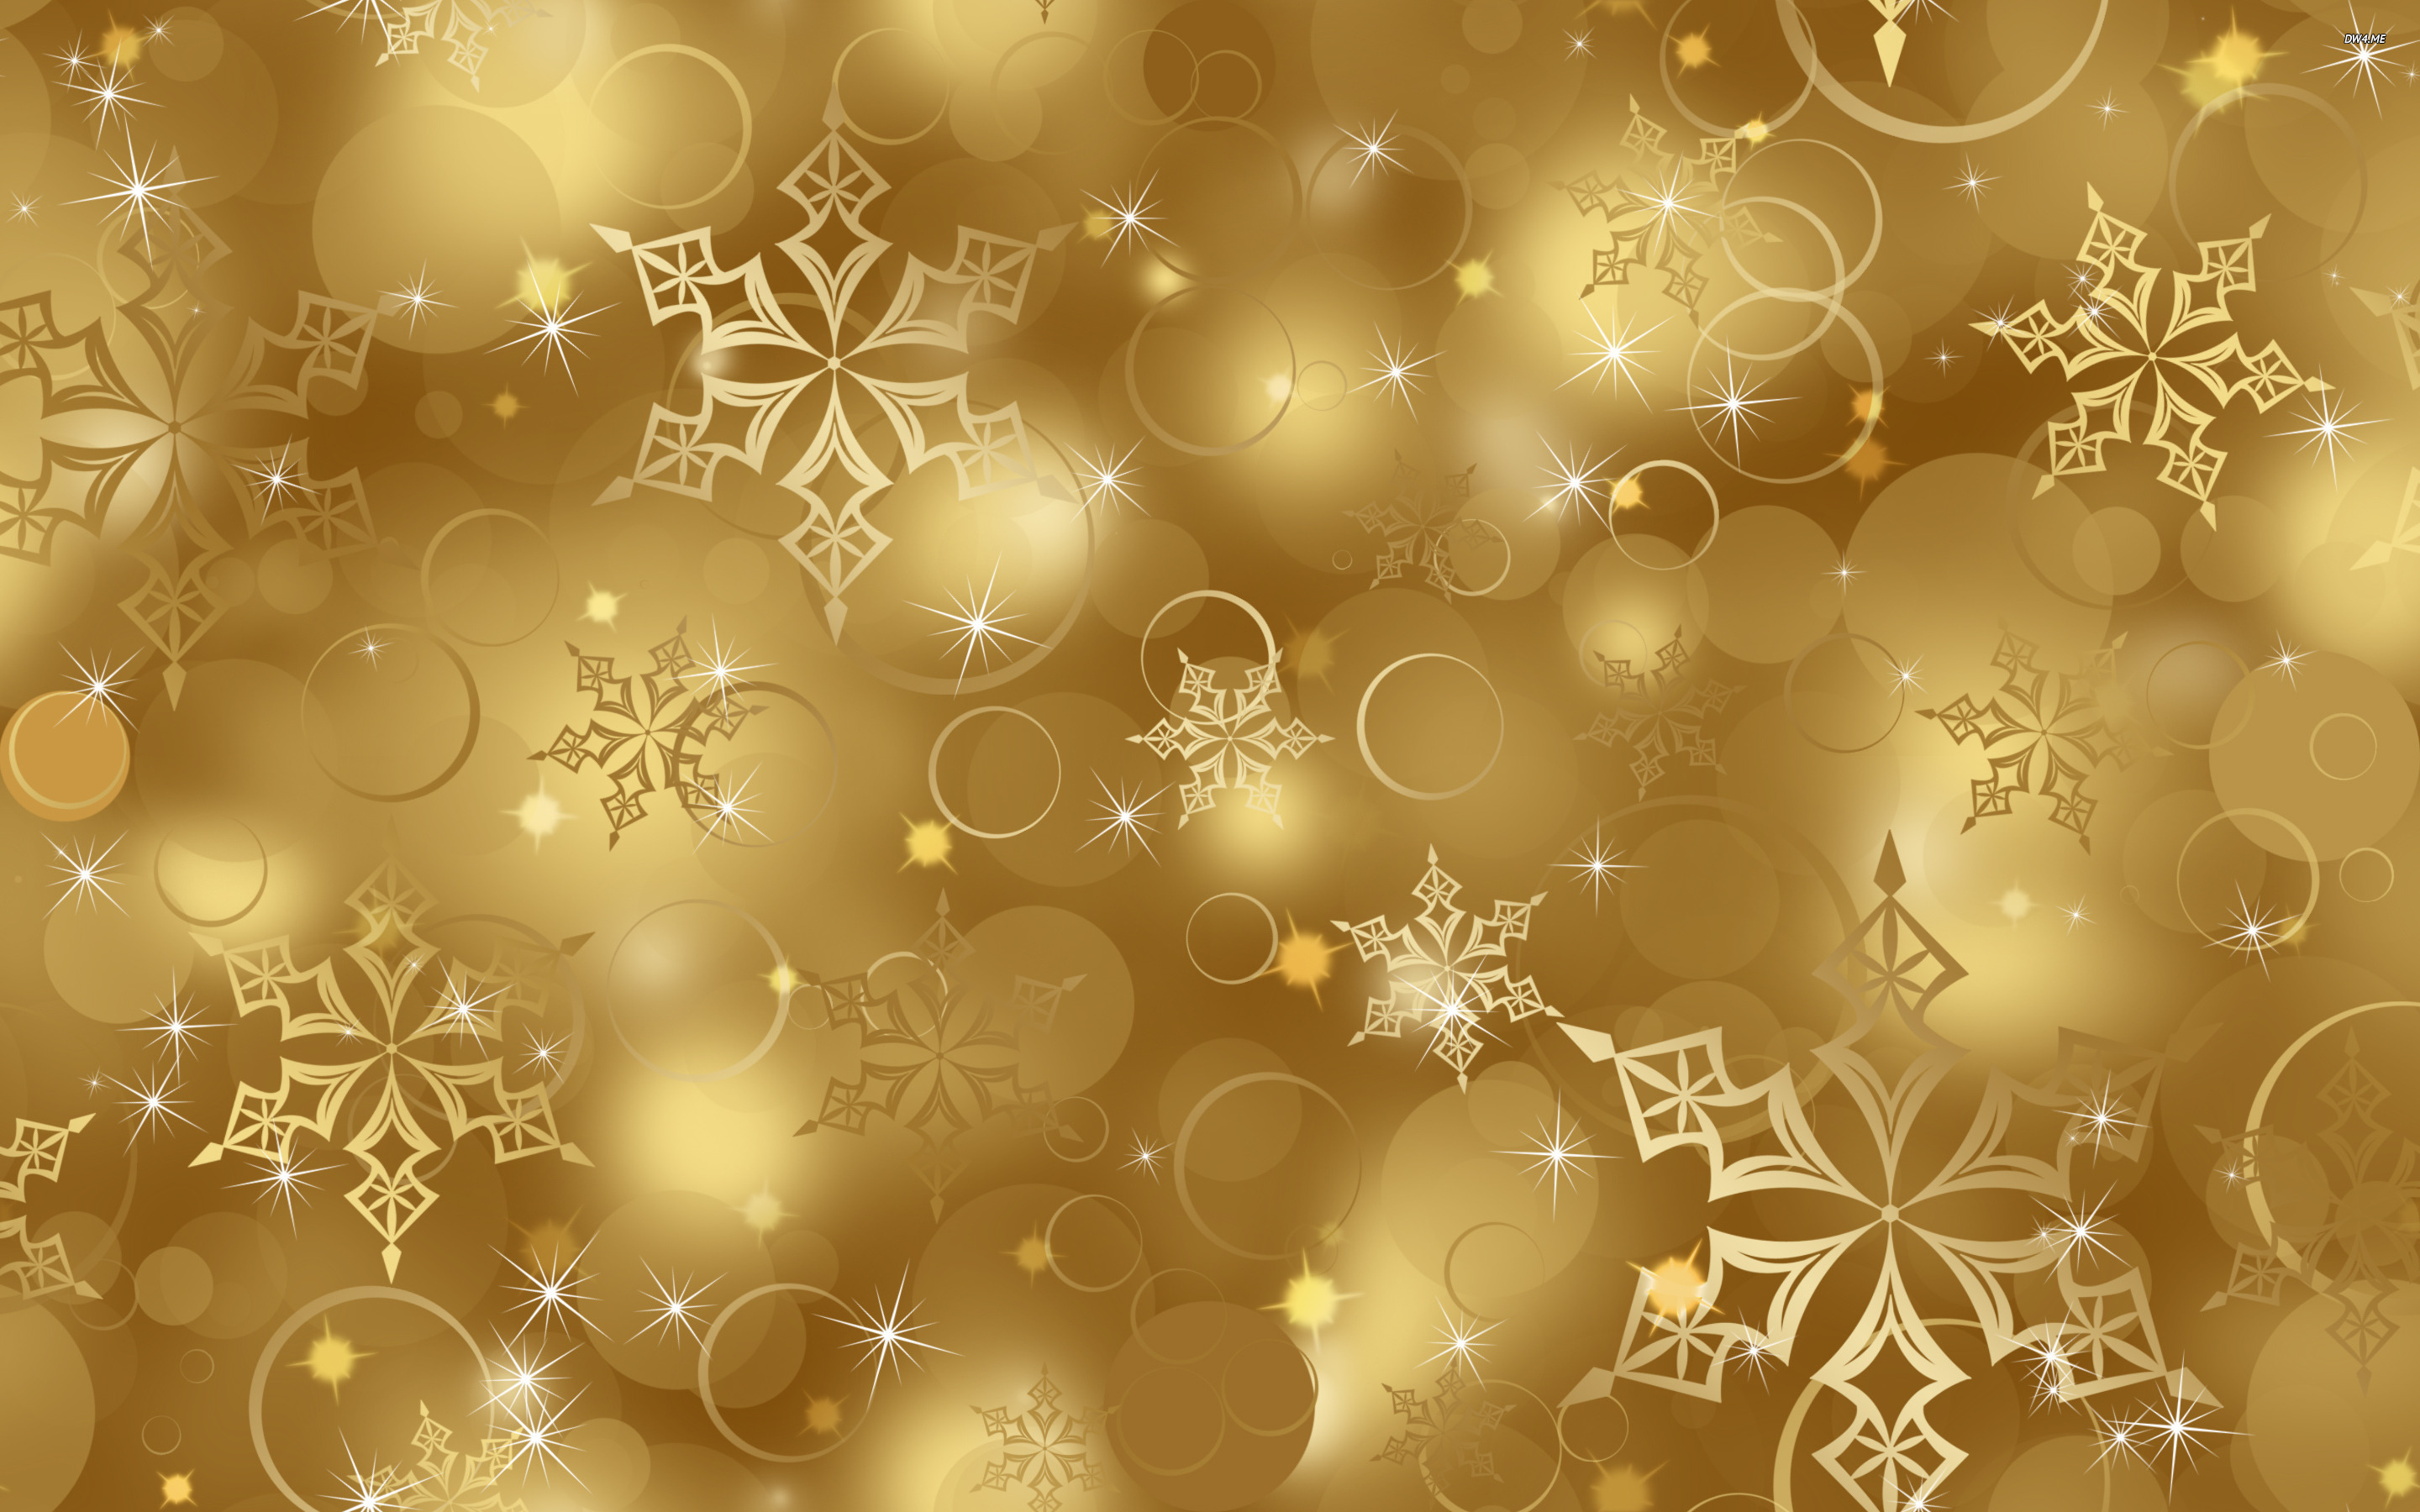 Wallpaper With Gold Stars